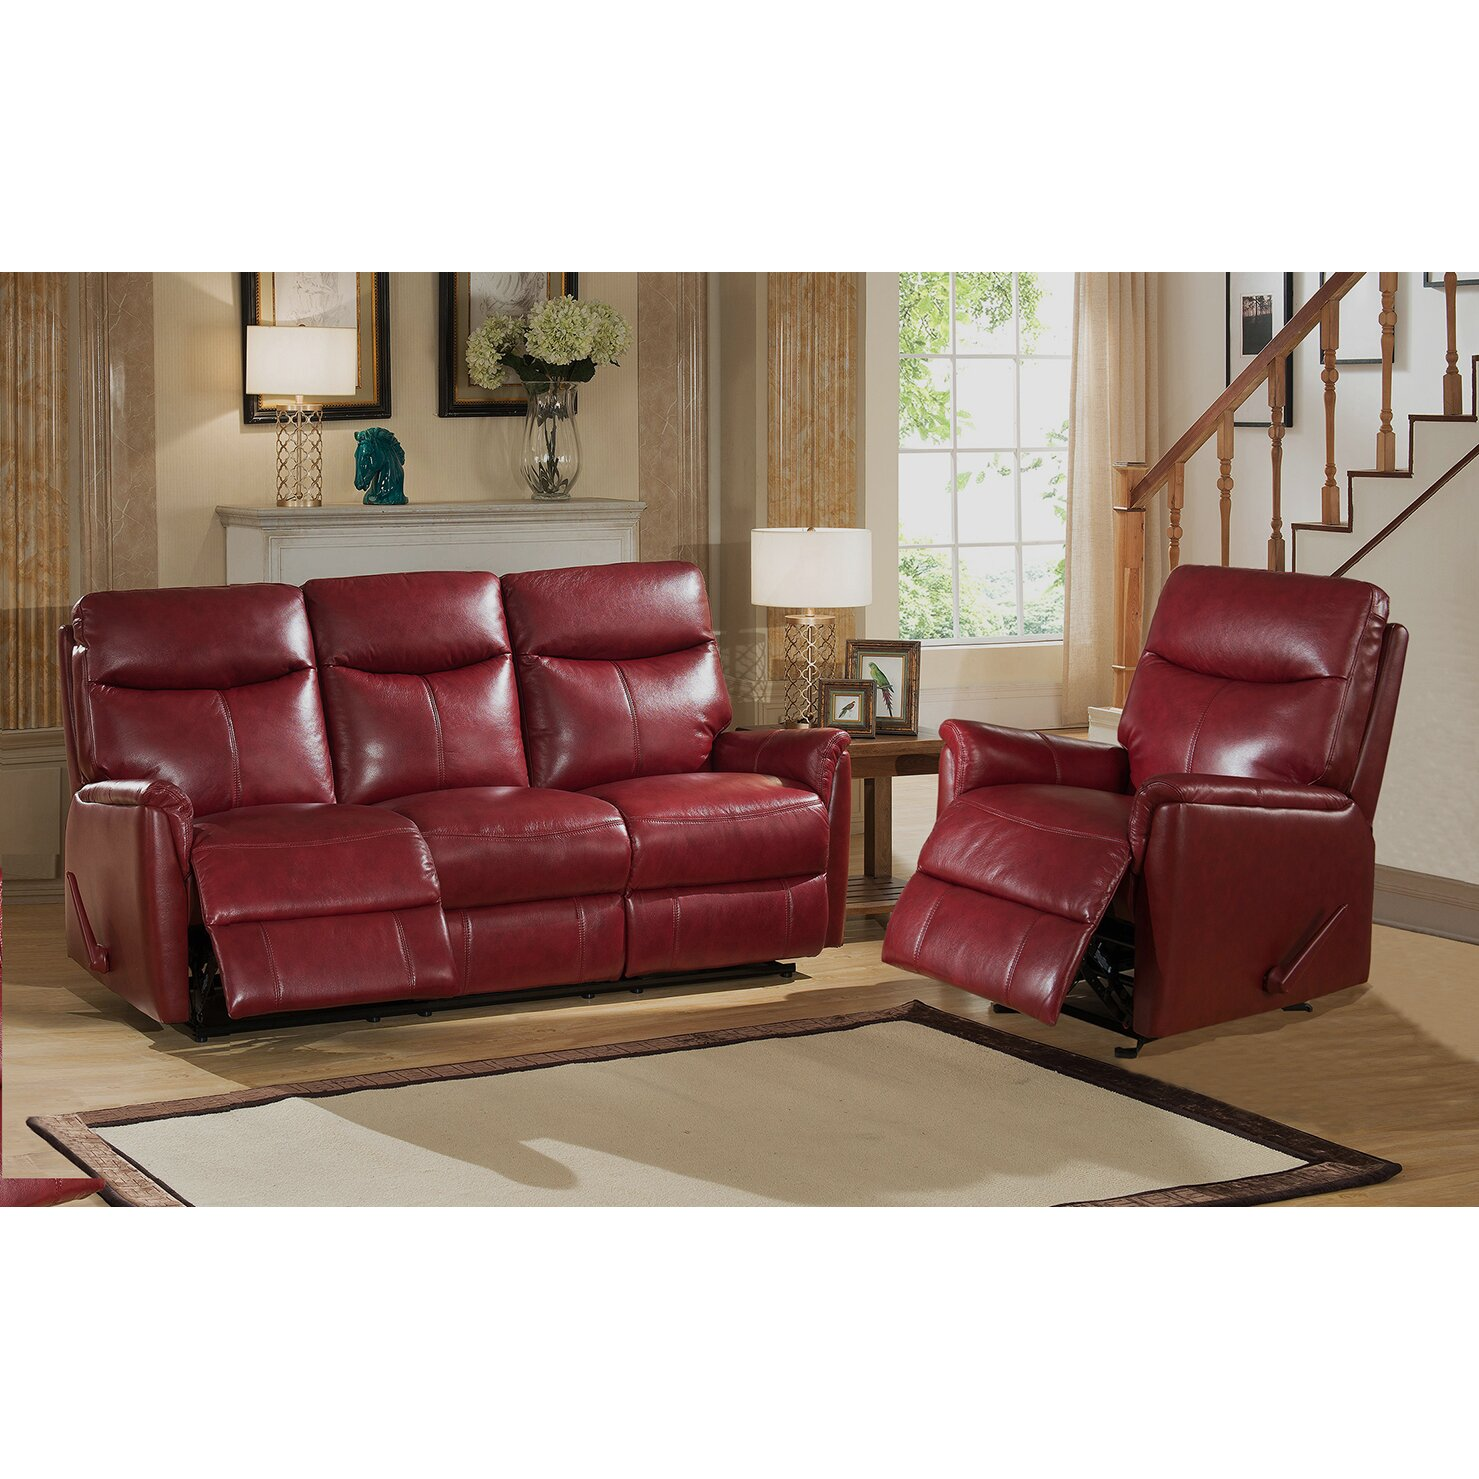 Top Grain Leather Living Room Set